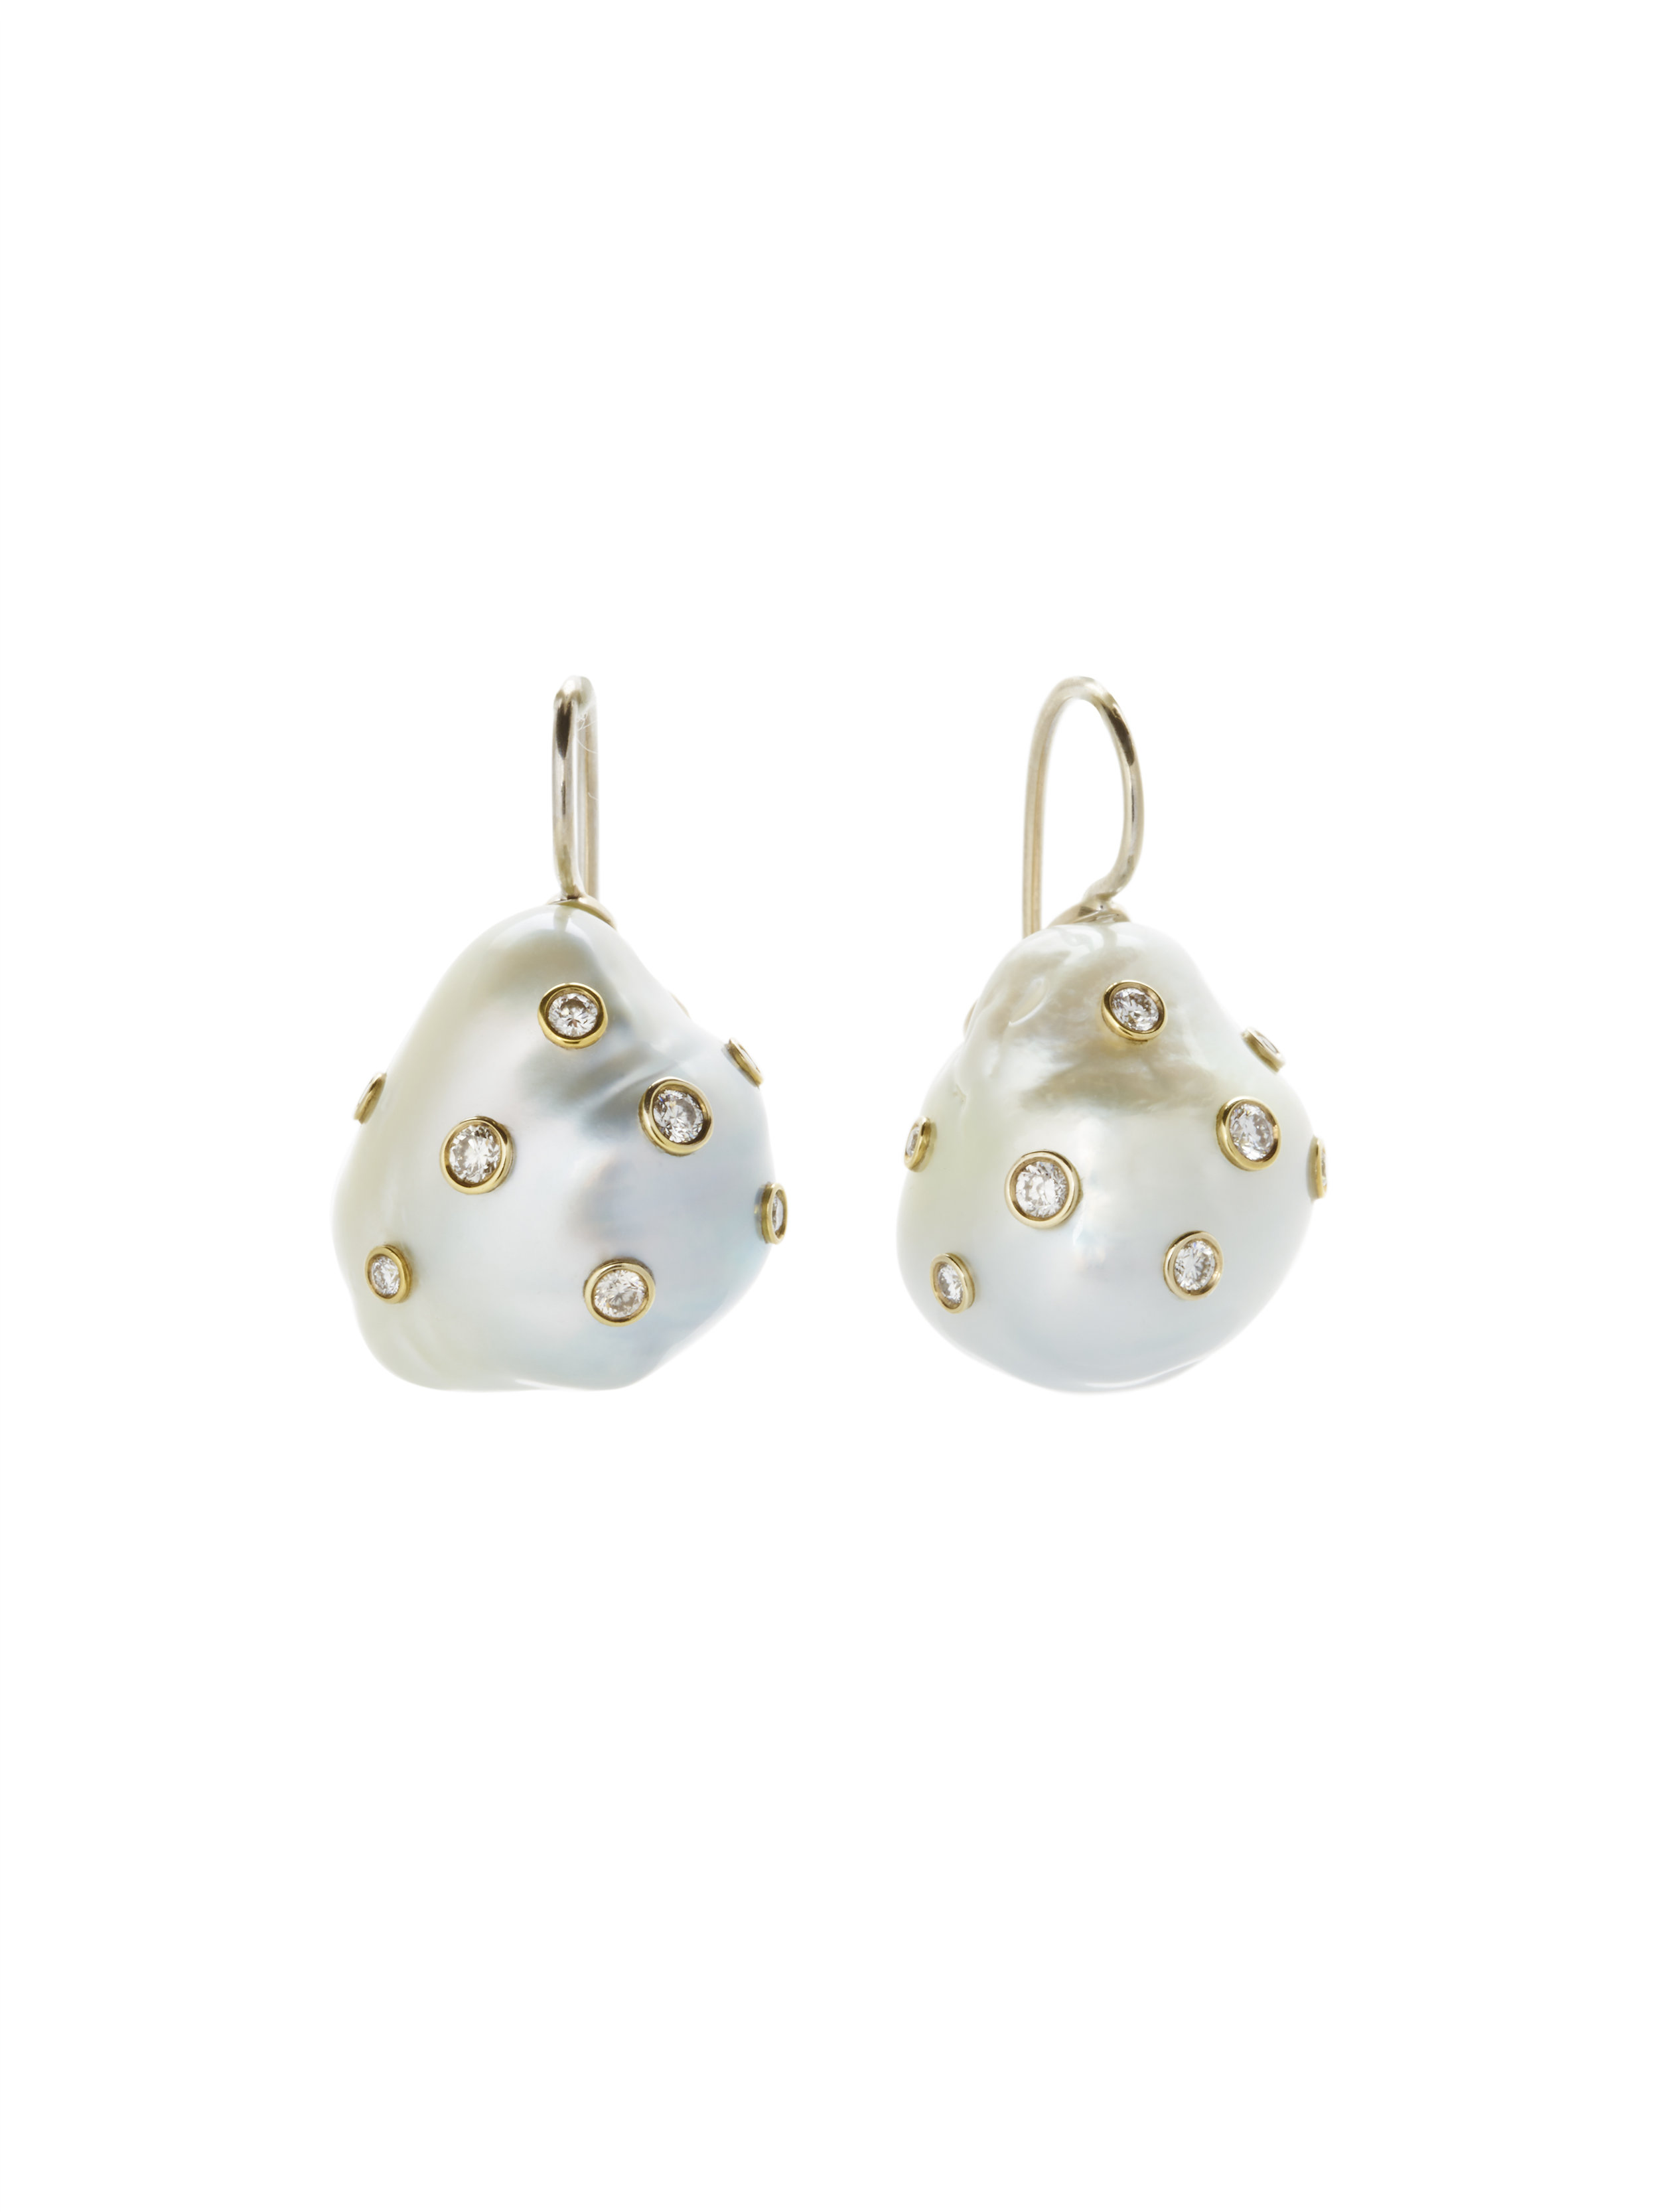 ANASTASIA EARRINGS   BAROQUE PEARLS  0.48 CT OF DIAMONDS      Contact for inquiry